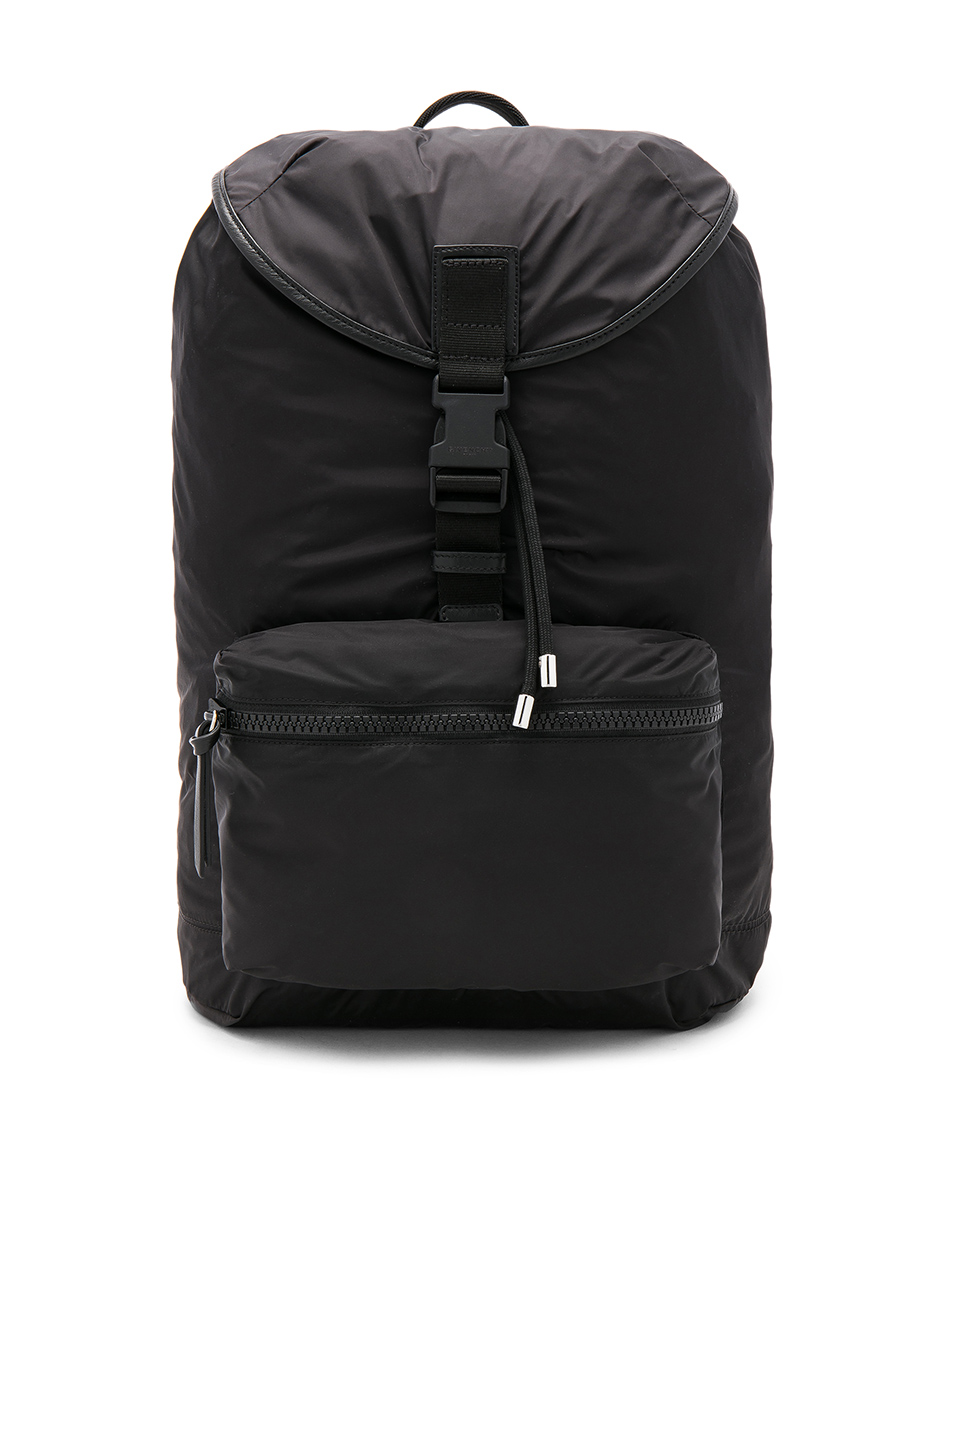 bc2c87a913bd We will watch available offers for you. Givenchy Black Nylon Stars   Tape  Obsedia Backpack